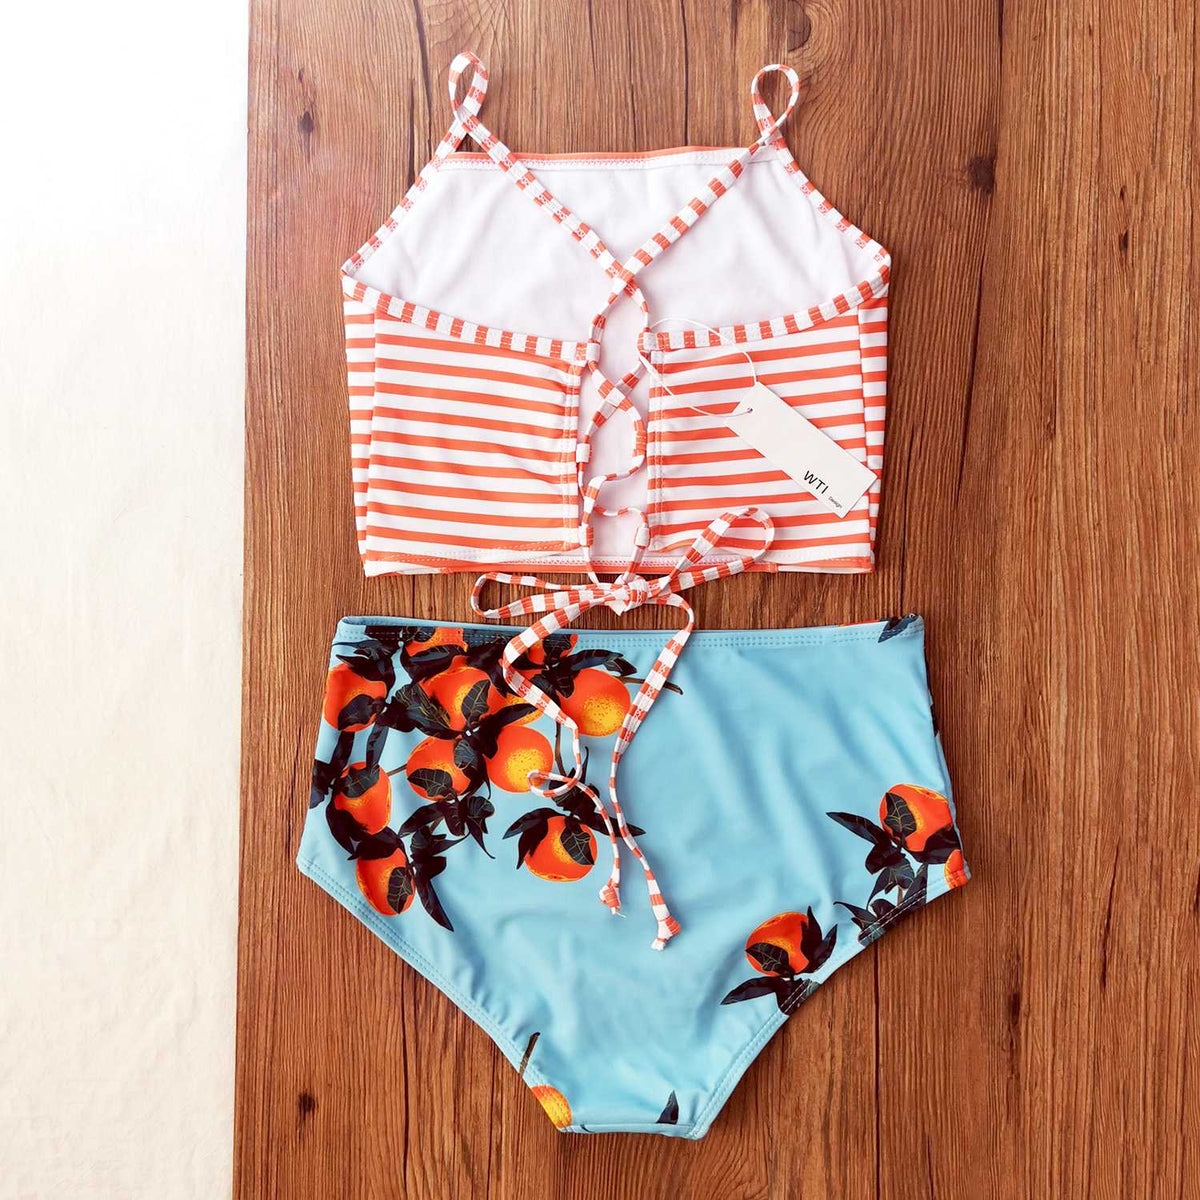 Lace up High Neck Two Piece Swimsuit